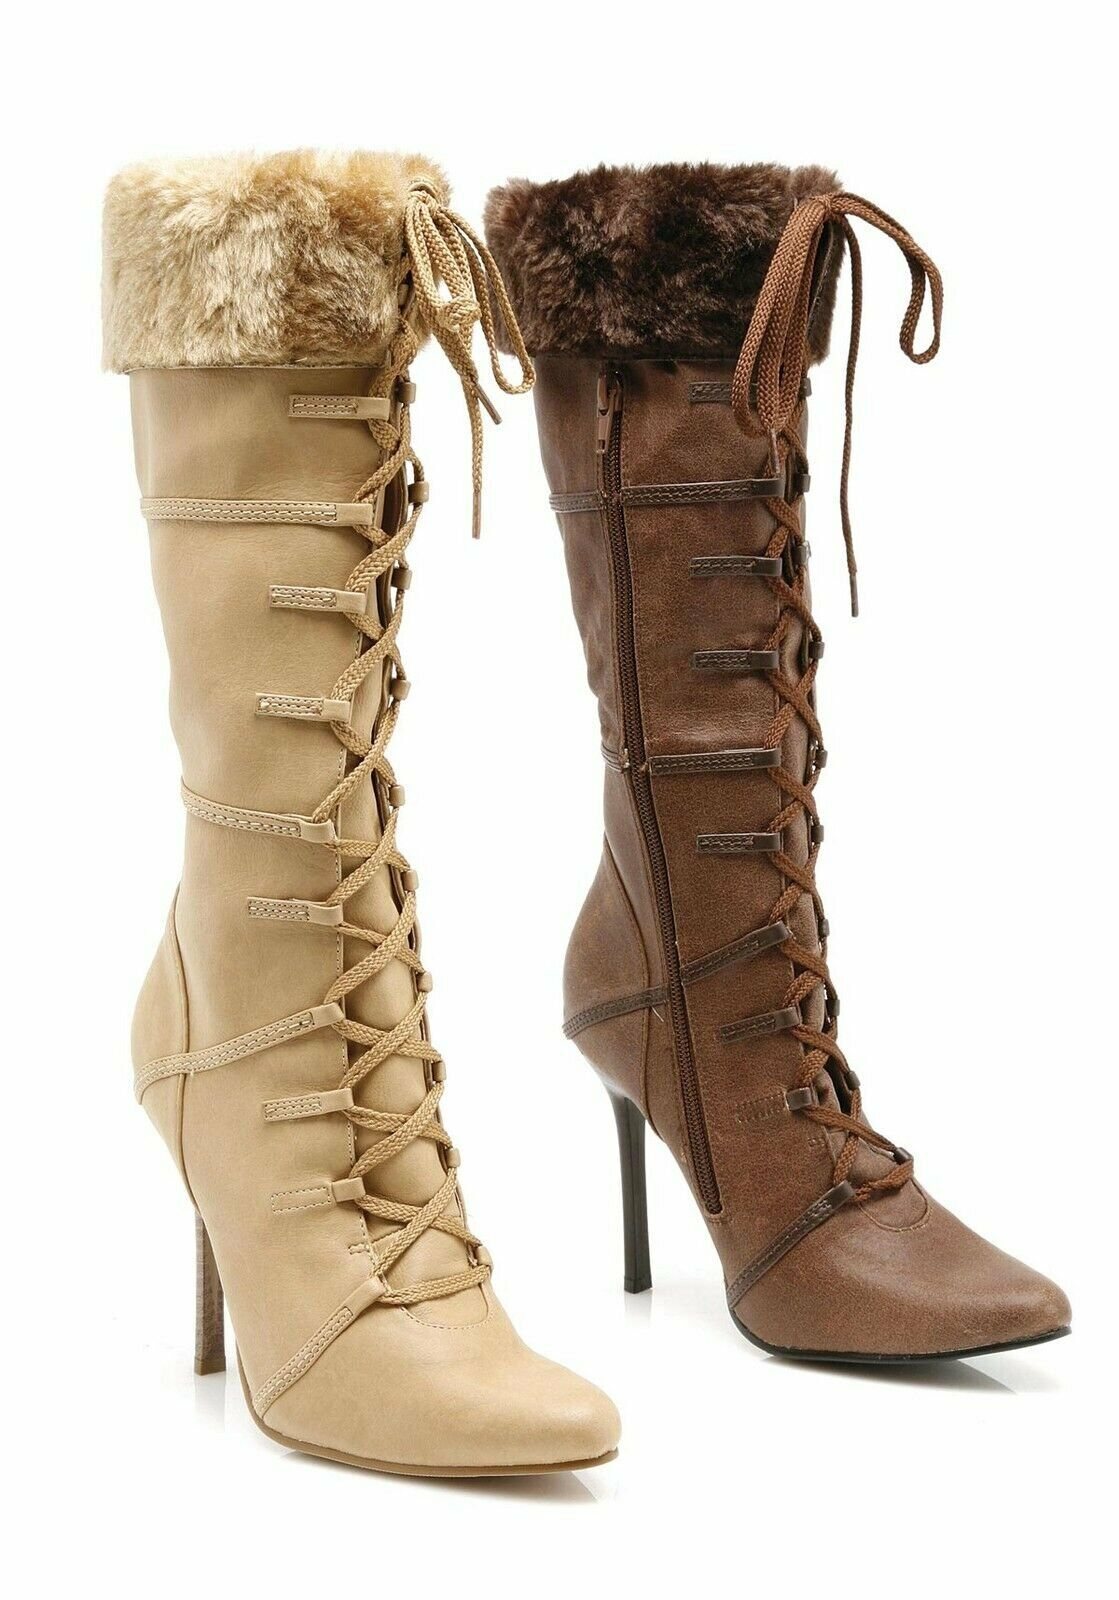 Ellie shoes 4'' Heel Knee High Boot Women's Size shoes With Stiletto Heel And Fur